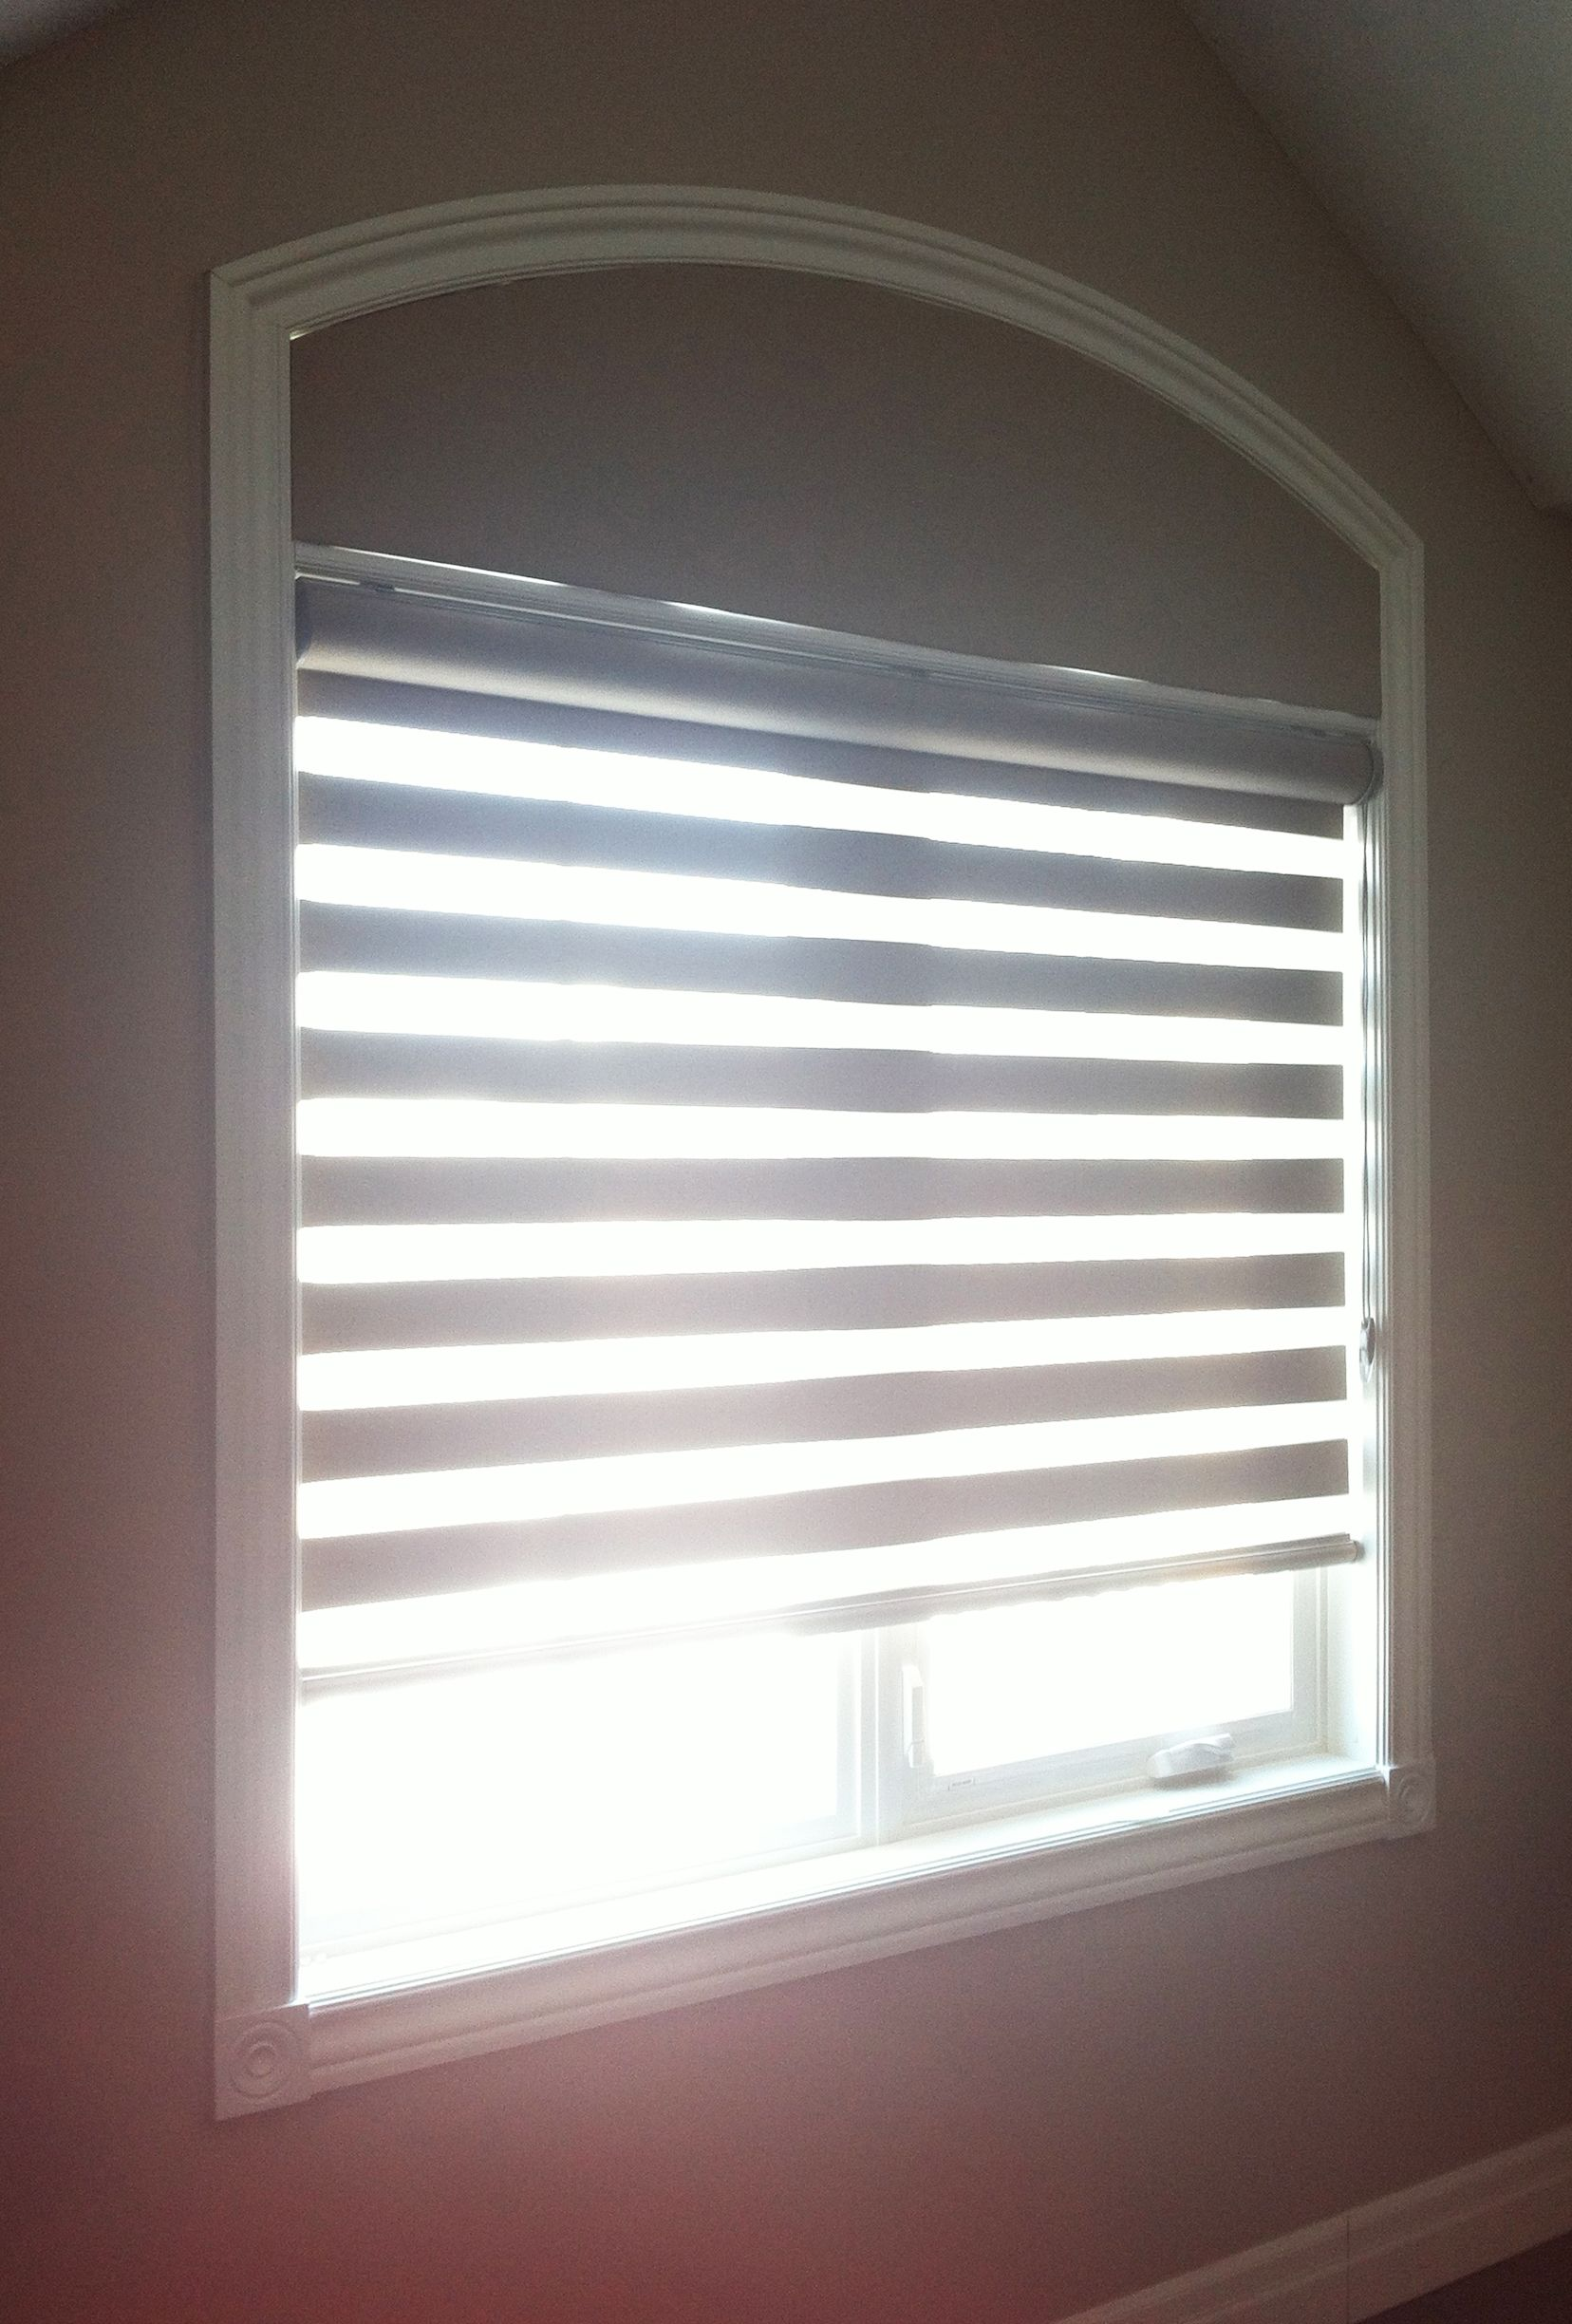 blinds line comes wood and this villa shutter faux at category with is blind a priced image year available average on in warranty archives competitively slats